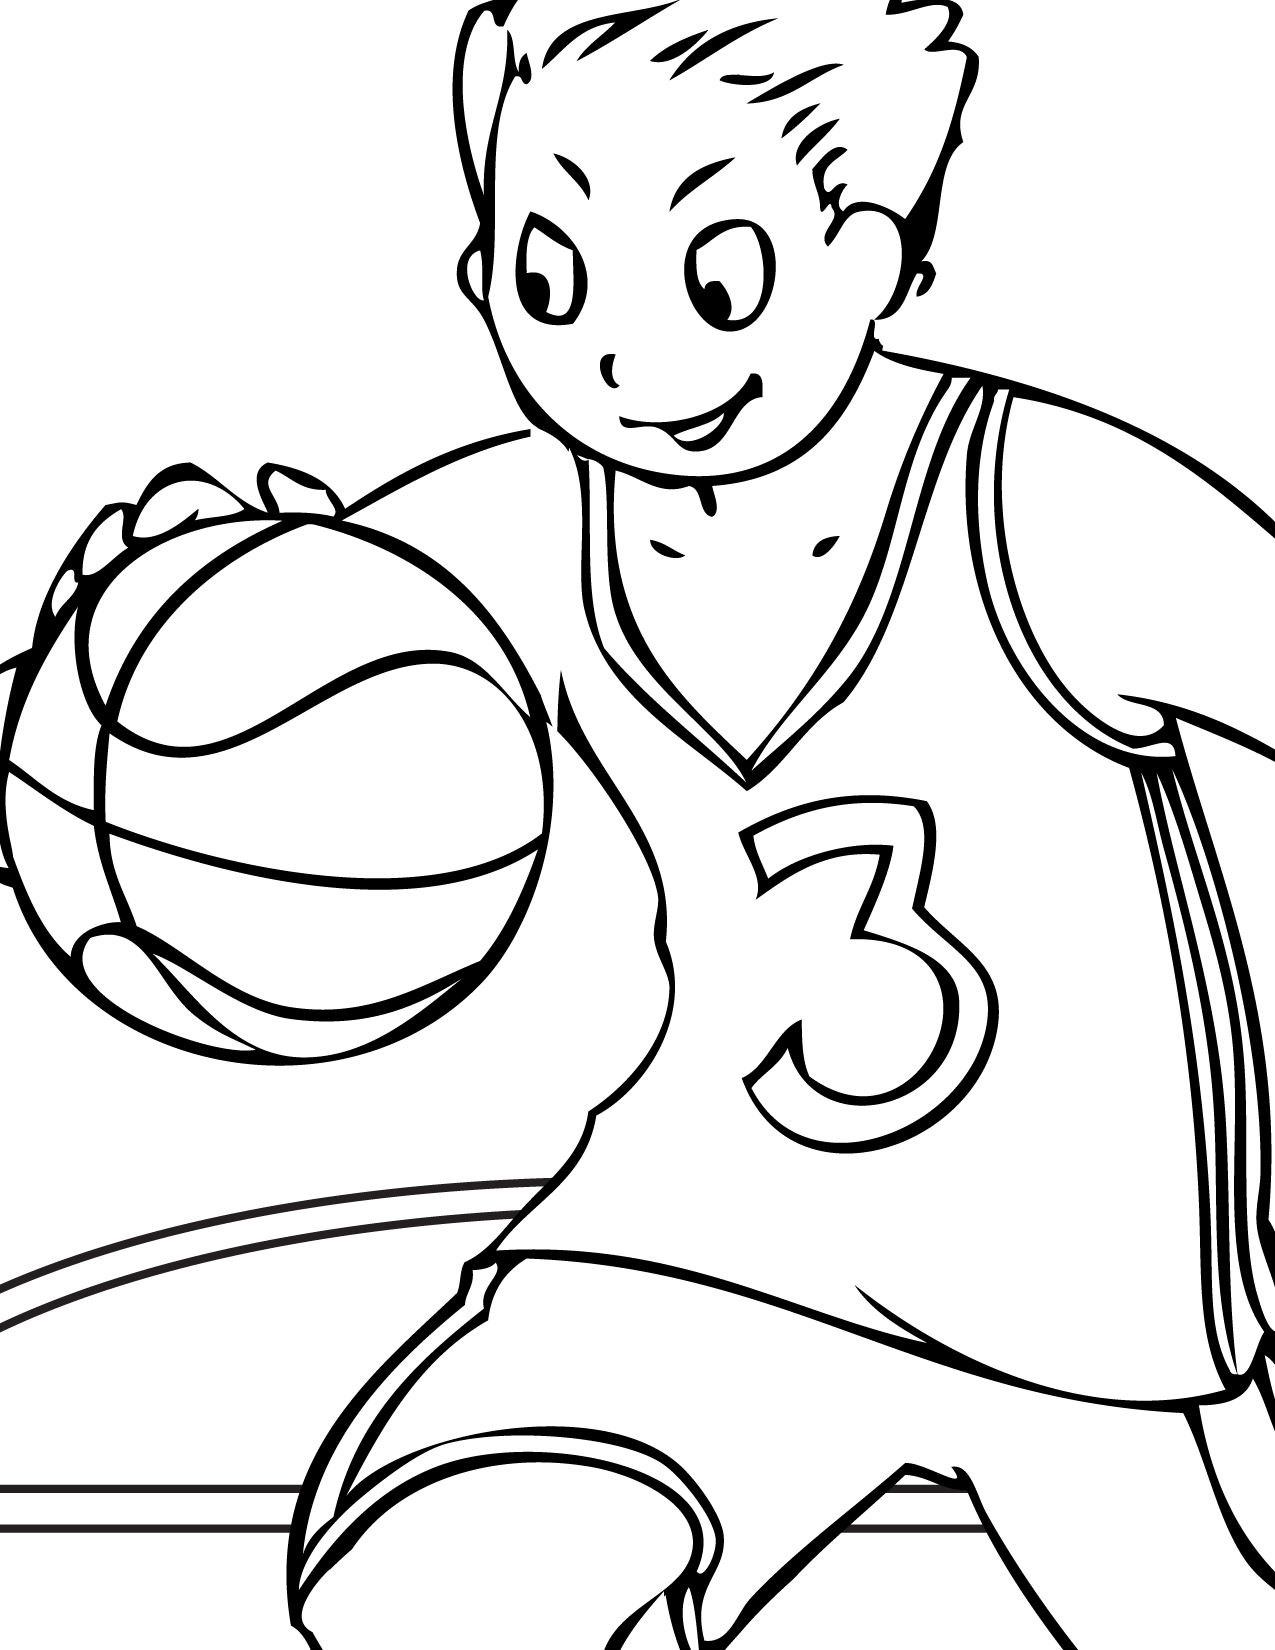 coloring pages for kdis - photo#4